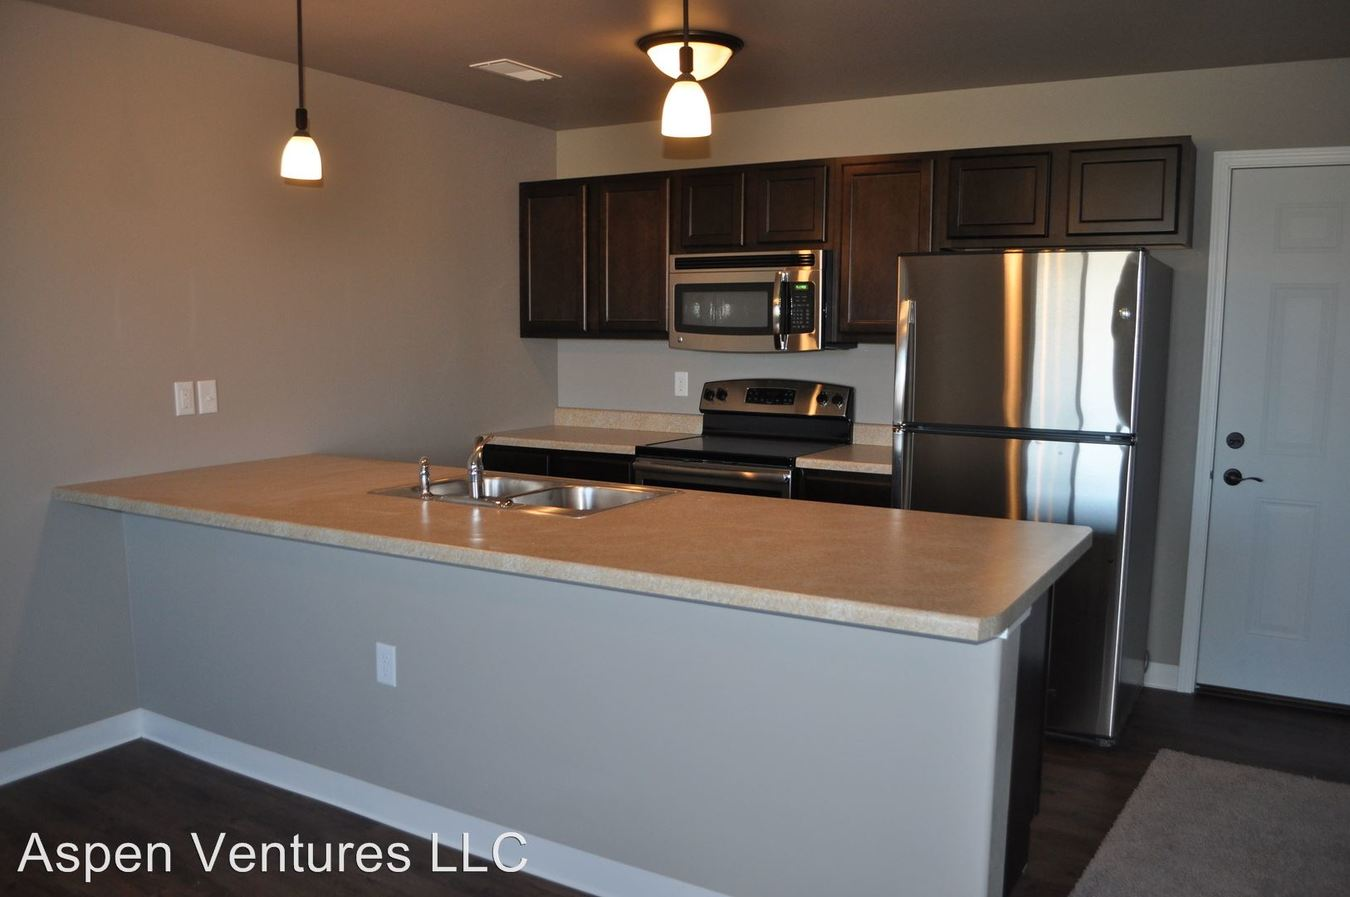 2 Bedrooms 1 Bathroom Apartment for rent at 591 State Street in Tiffin, IA